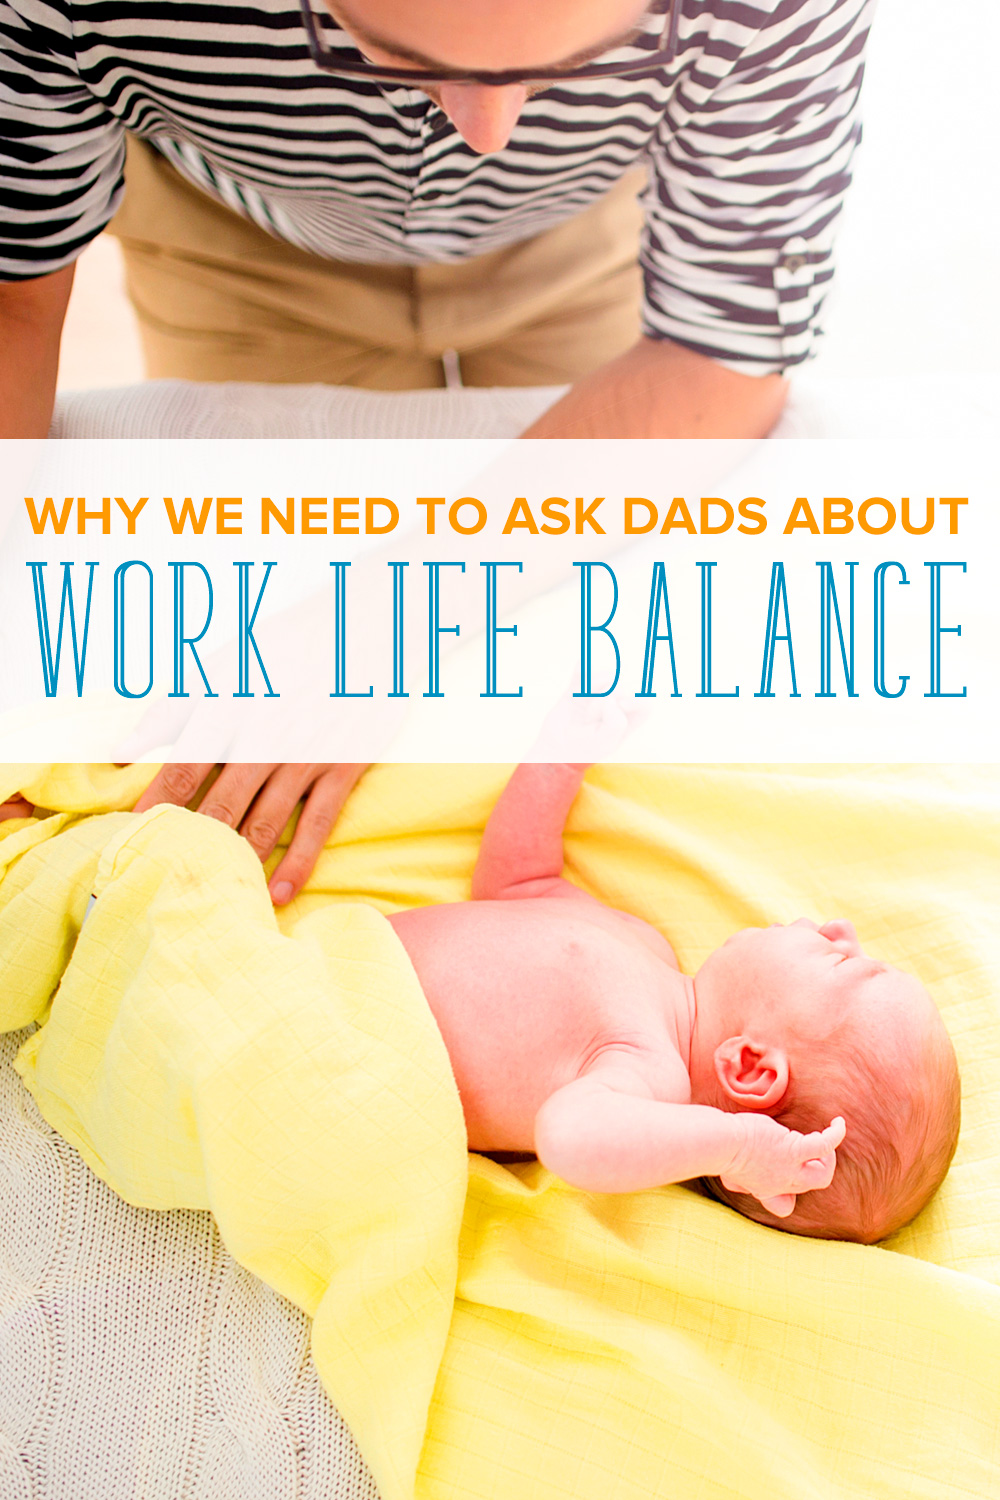 While moms are asked about work life balance, working fathers are excluded from the conversation. Let's talk dads and work life balance.